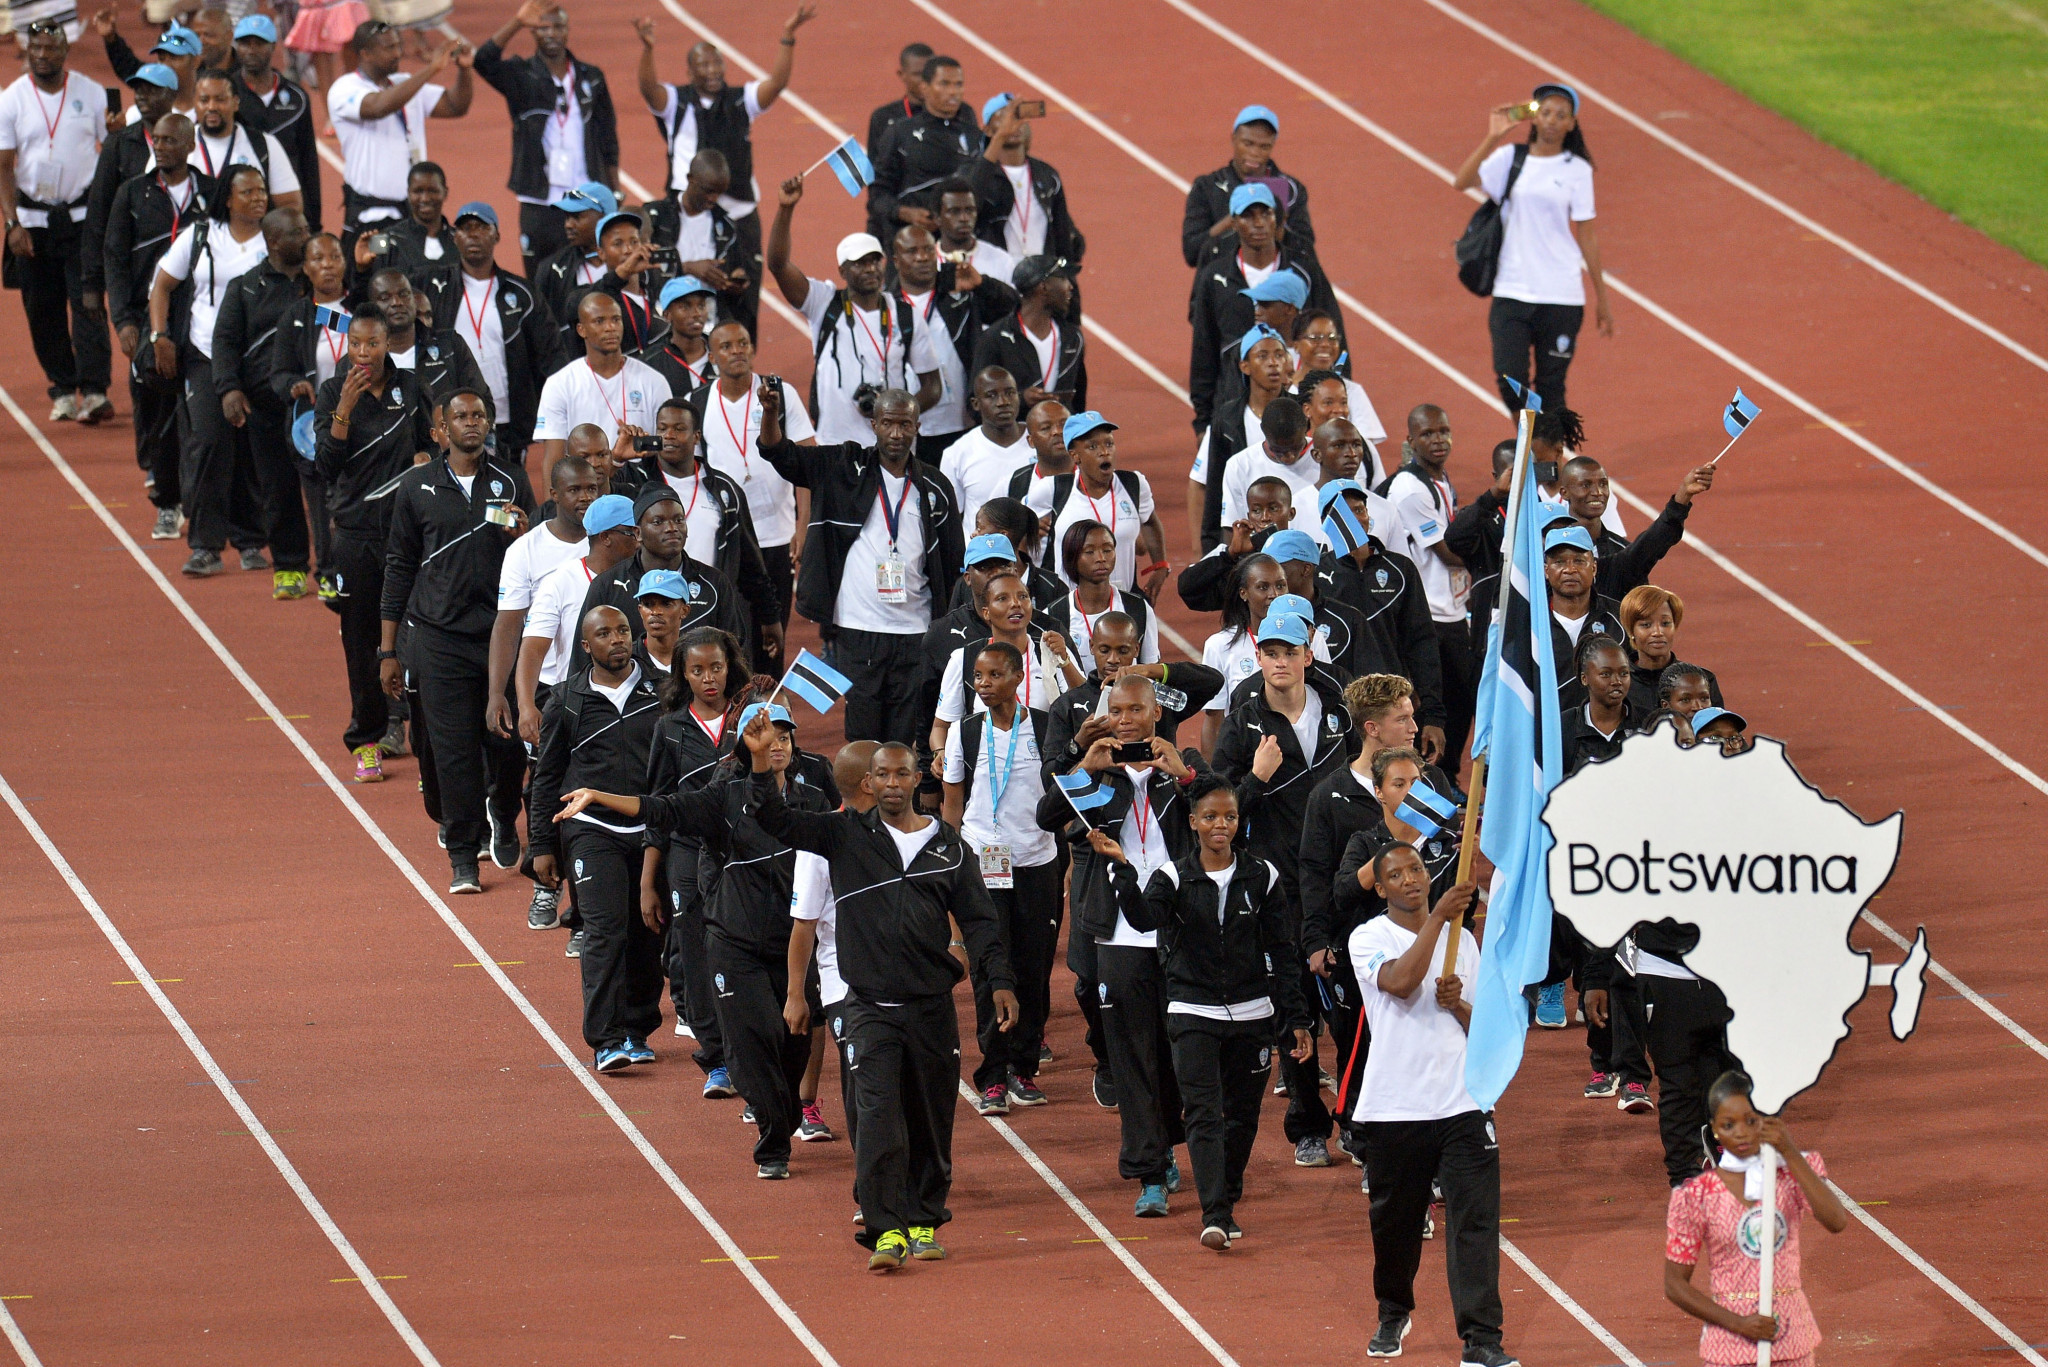 Botswana Government fund country's team to compete in African Games